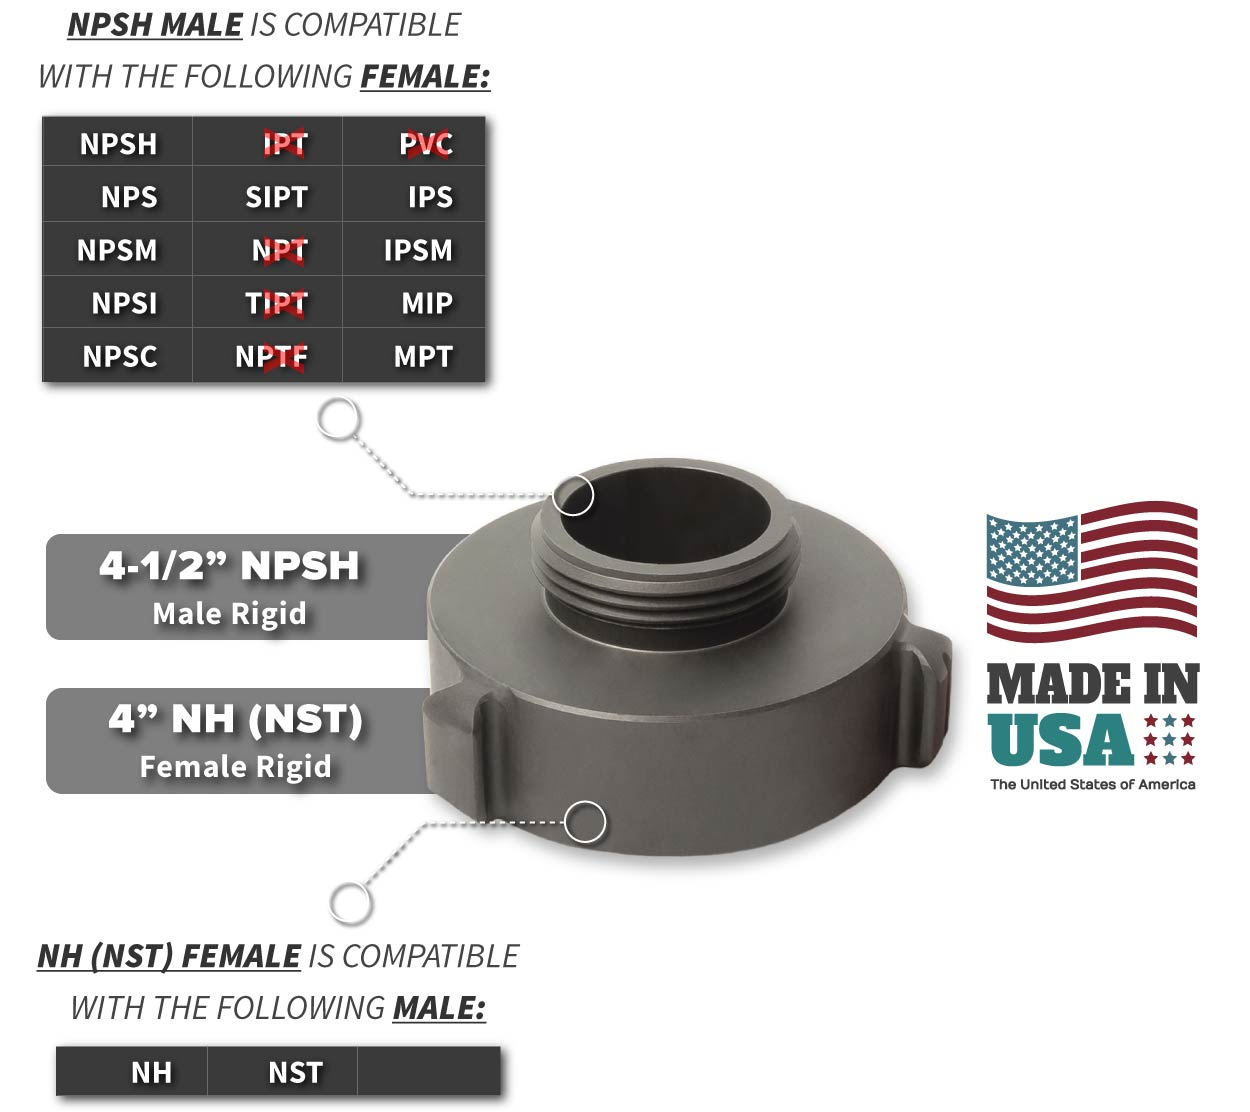 4 Inch NH-NST Female x 4.5 Inch NPSH Male Compatibility Thread Chart